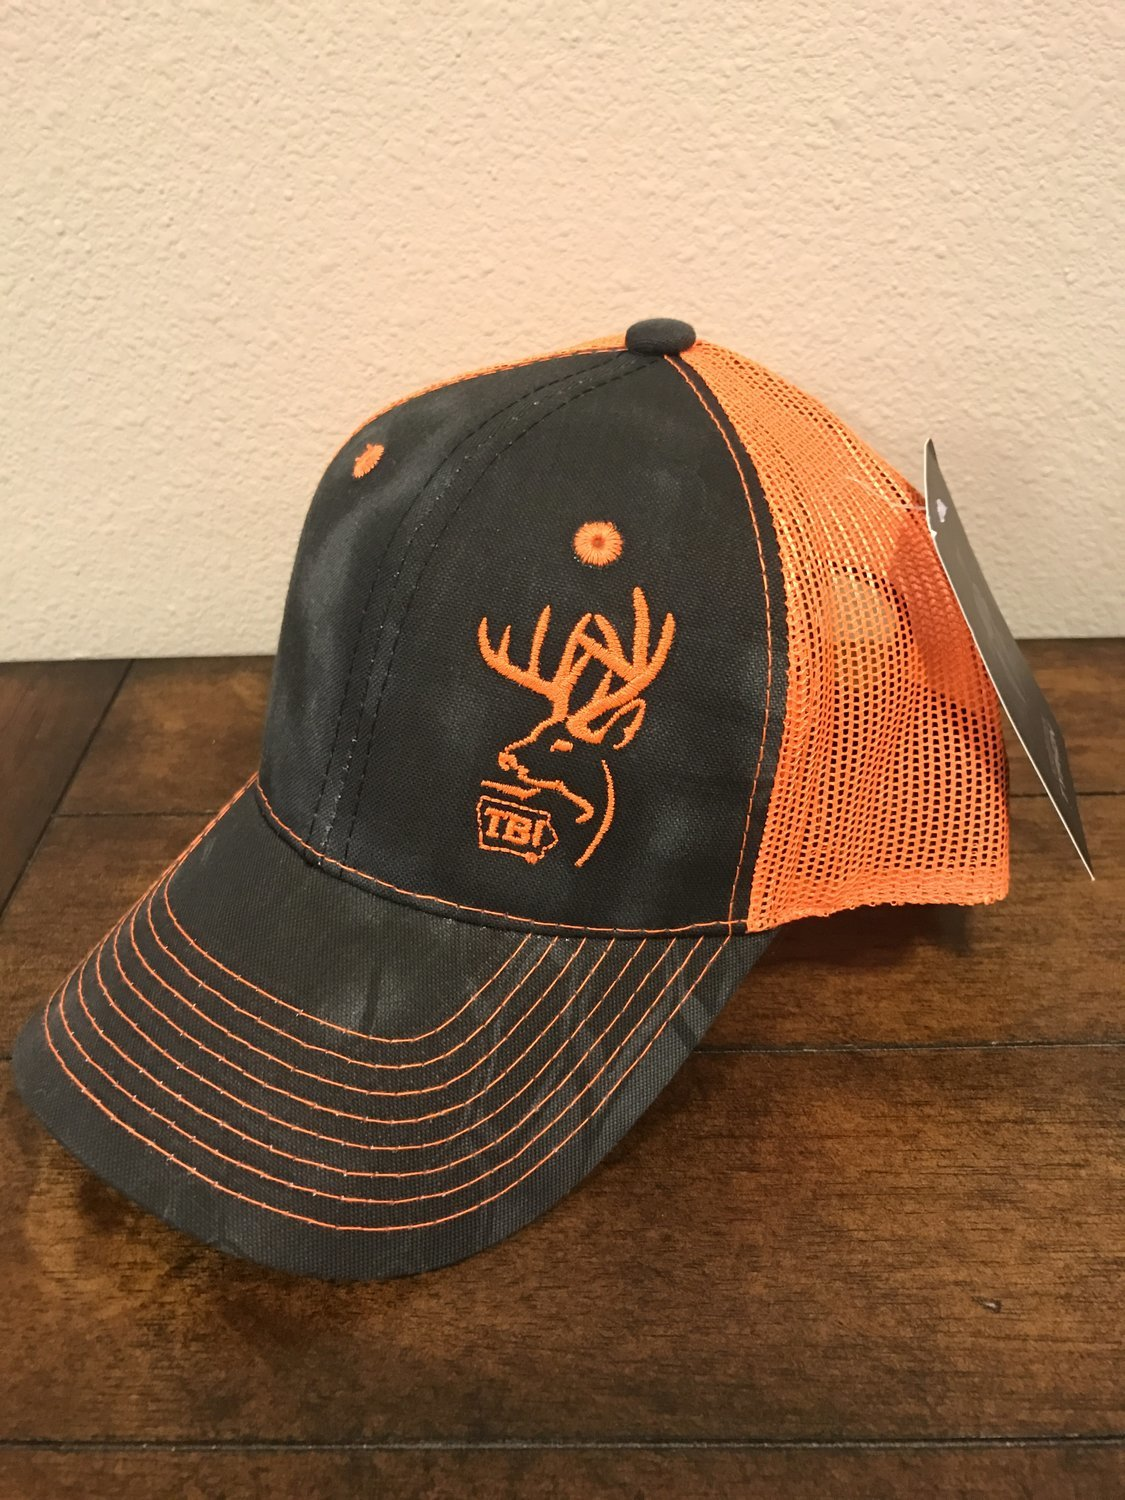 Blaze Orange / Black Kryptek Camo TBI Hat